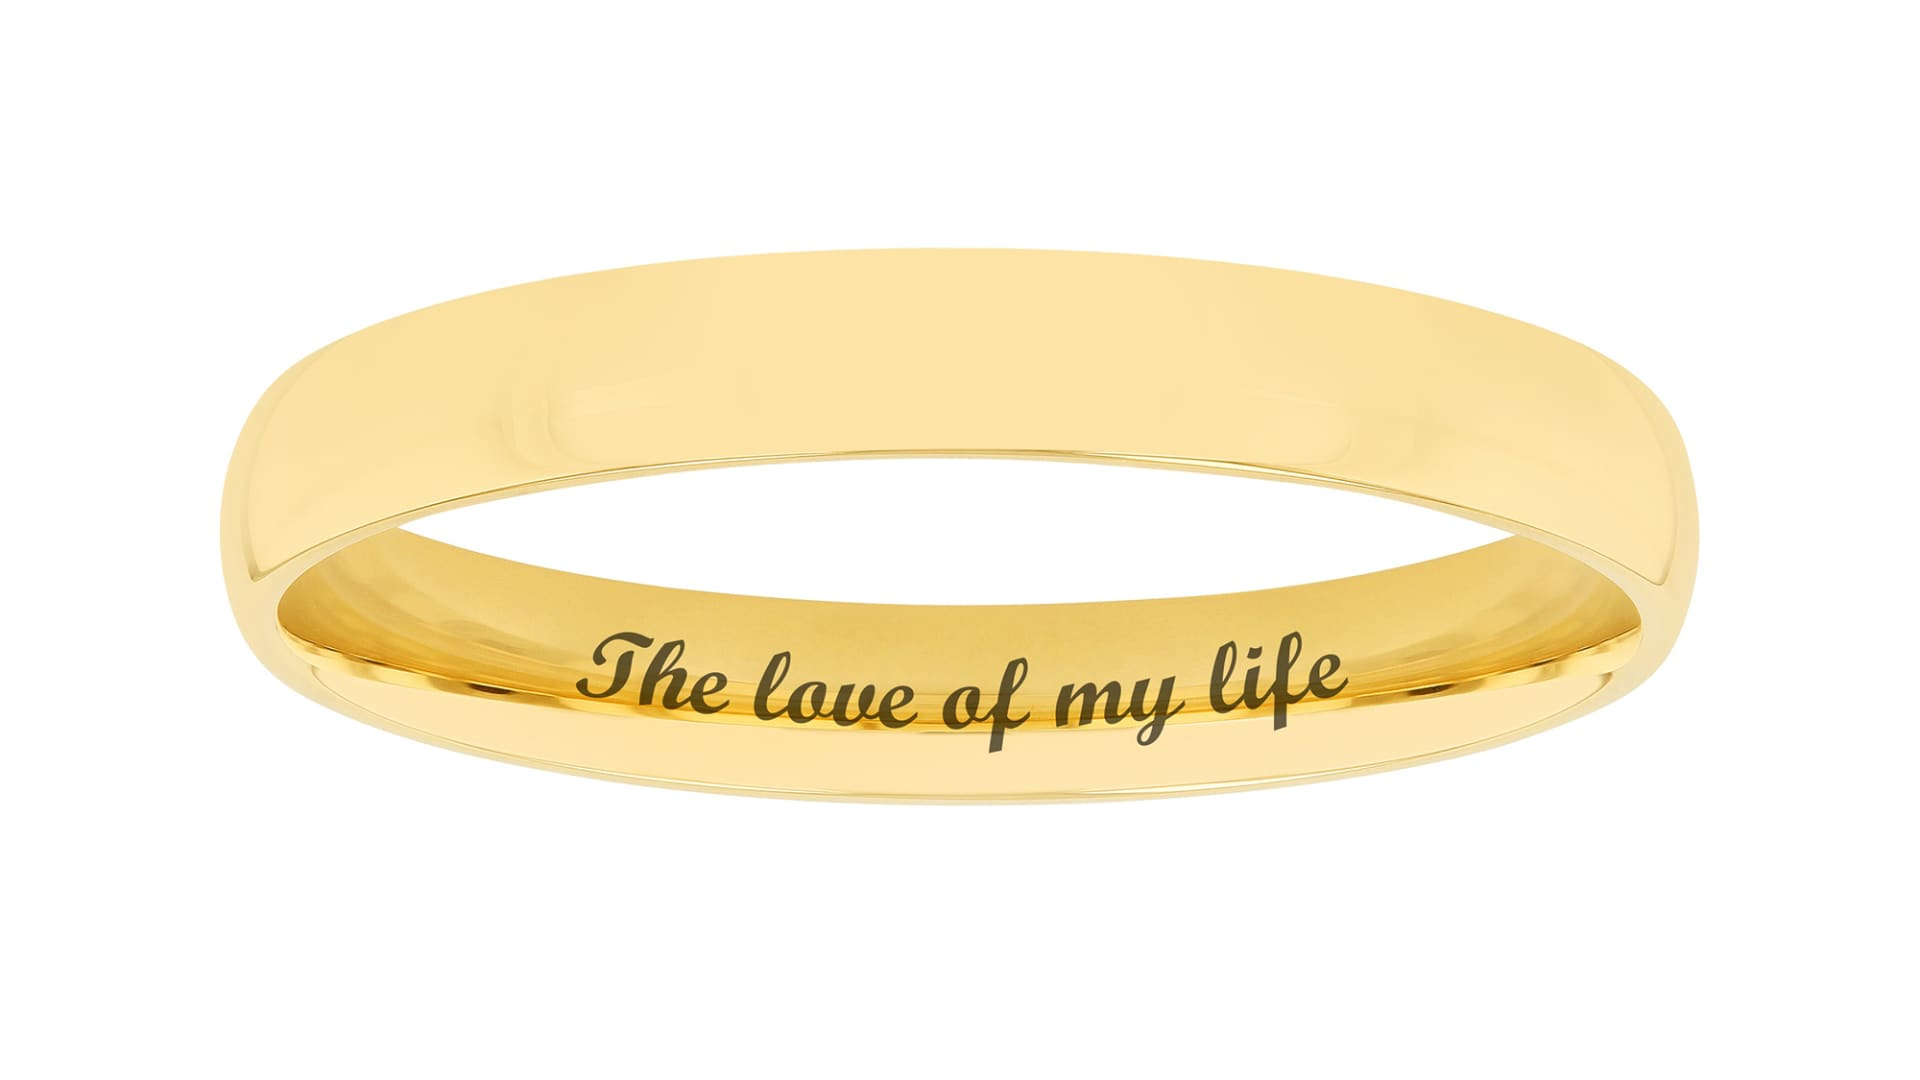 During the pandemic, Signet CEO Gina Drosos said customers have sought out more personalized gifts at its stores, including Zales. Some have gotten rings or other jewelry engraved with messages about how the pandemic has strengthened their love.